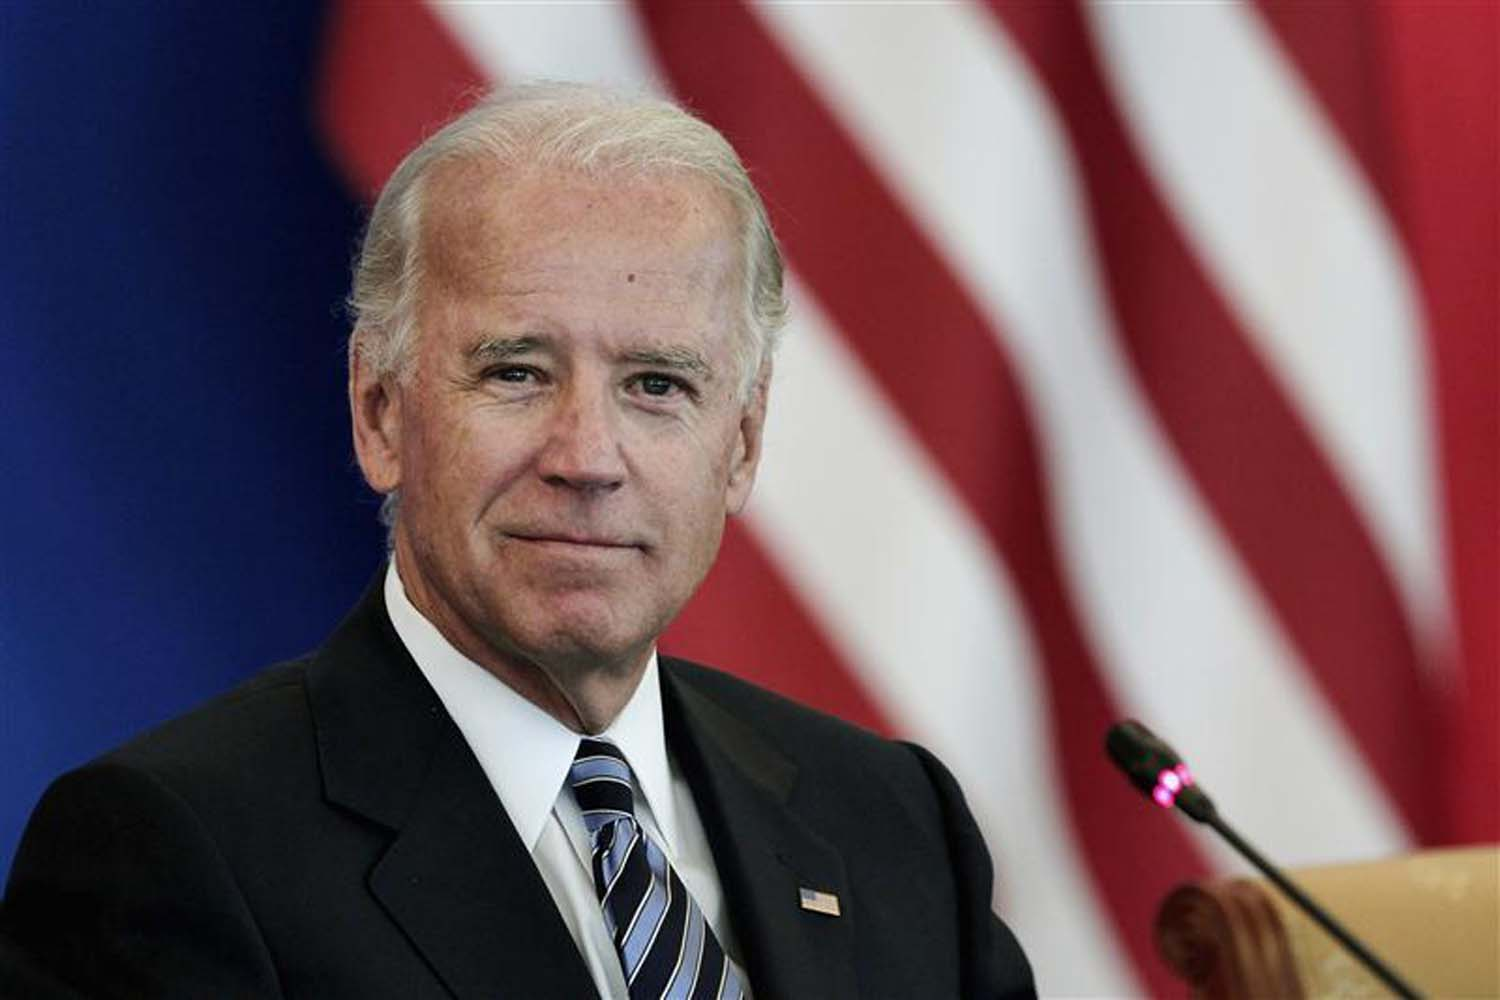 U.S. Vice President Biden attends a discussion with U.S. and Chinese business leaders at Beijing Hotel in Beijing